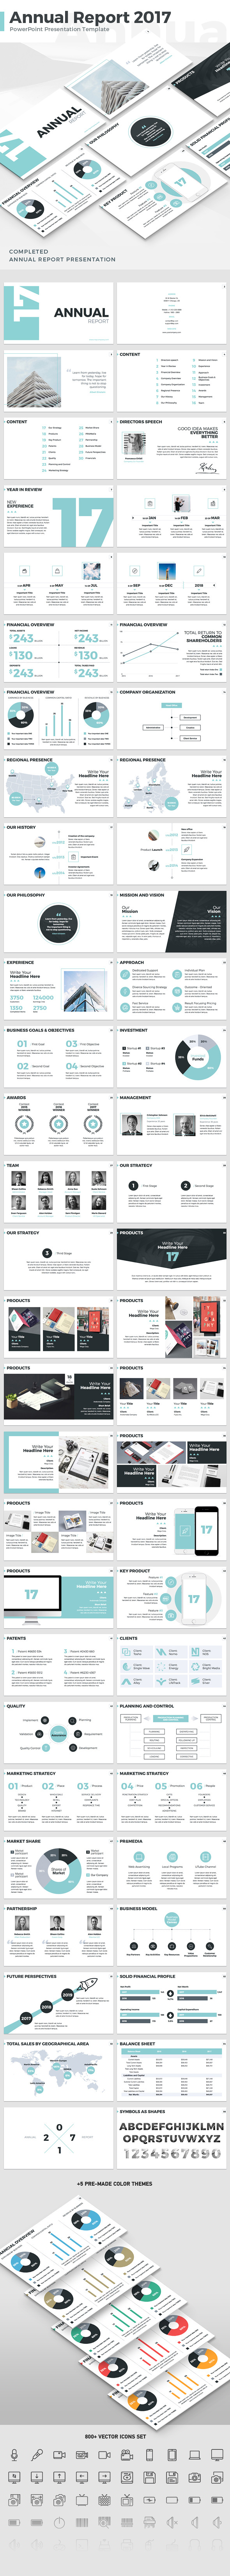 Annual Report 2017 - PowerPoint Template - PowerPoint Templates Presentation Templates